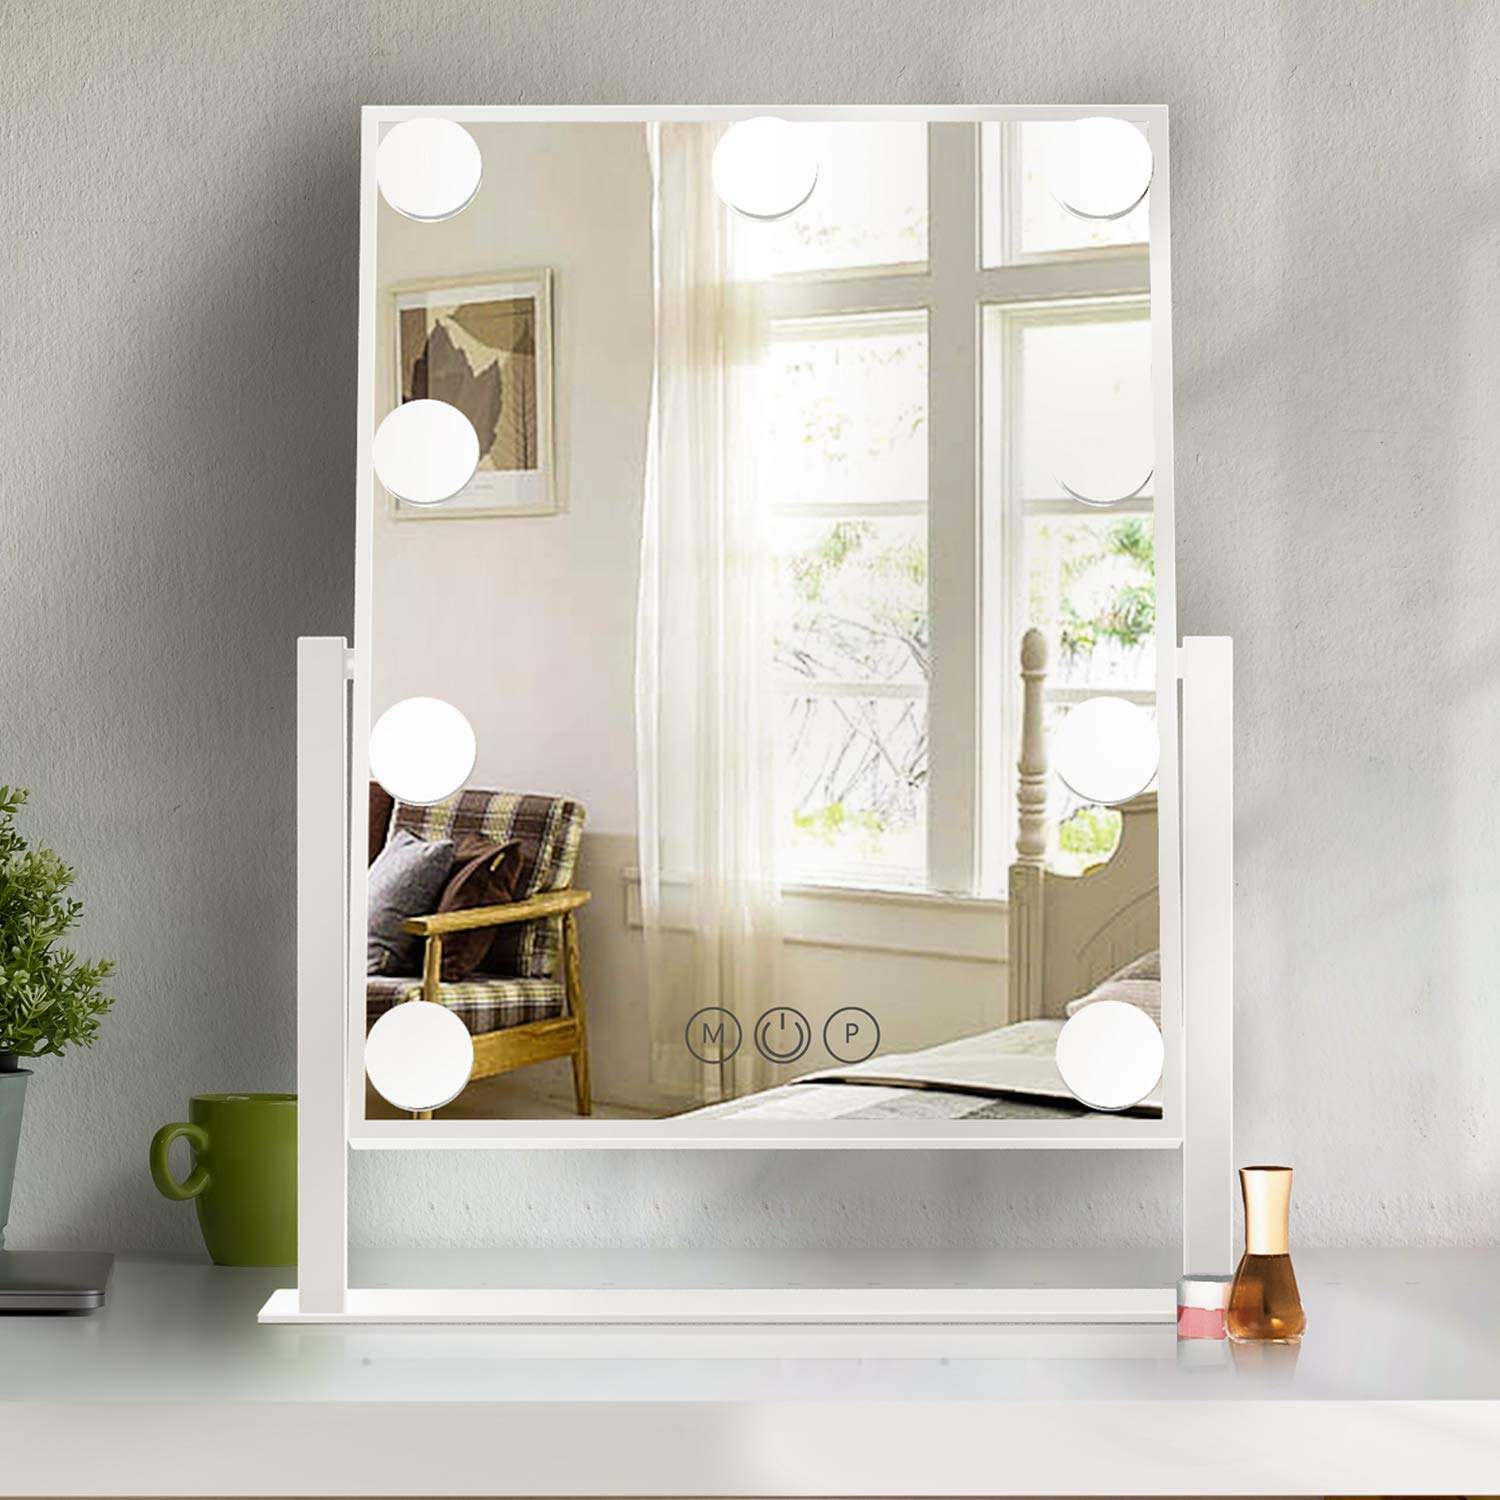 Lighted Vanity Make Mirror with Light,Makeup Mirror with Dimmable LED Blubs, Screen Touch Control Three Colors Lights Ajustable Angle for Dressing Table